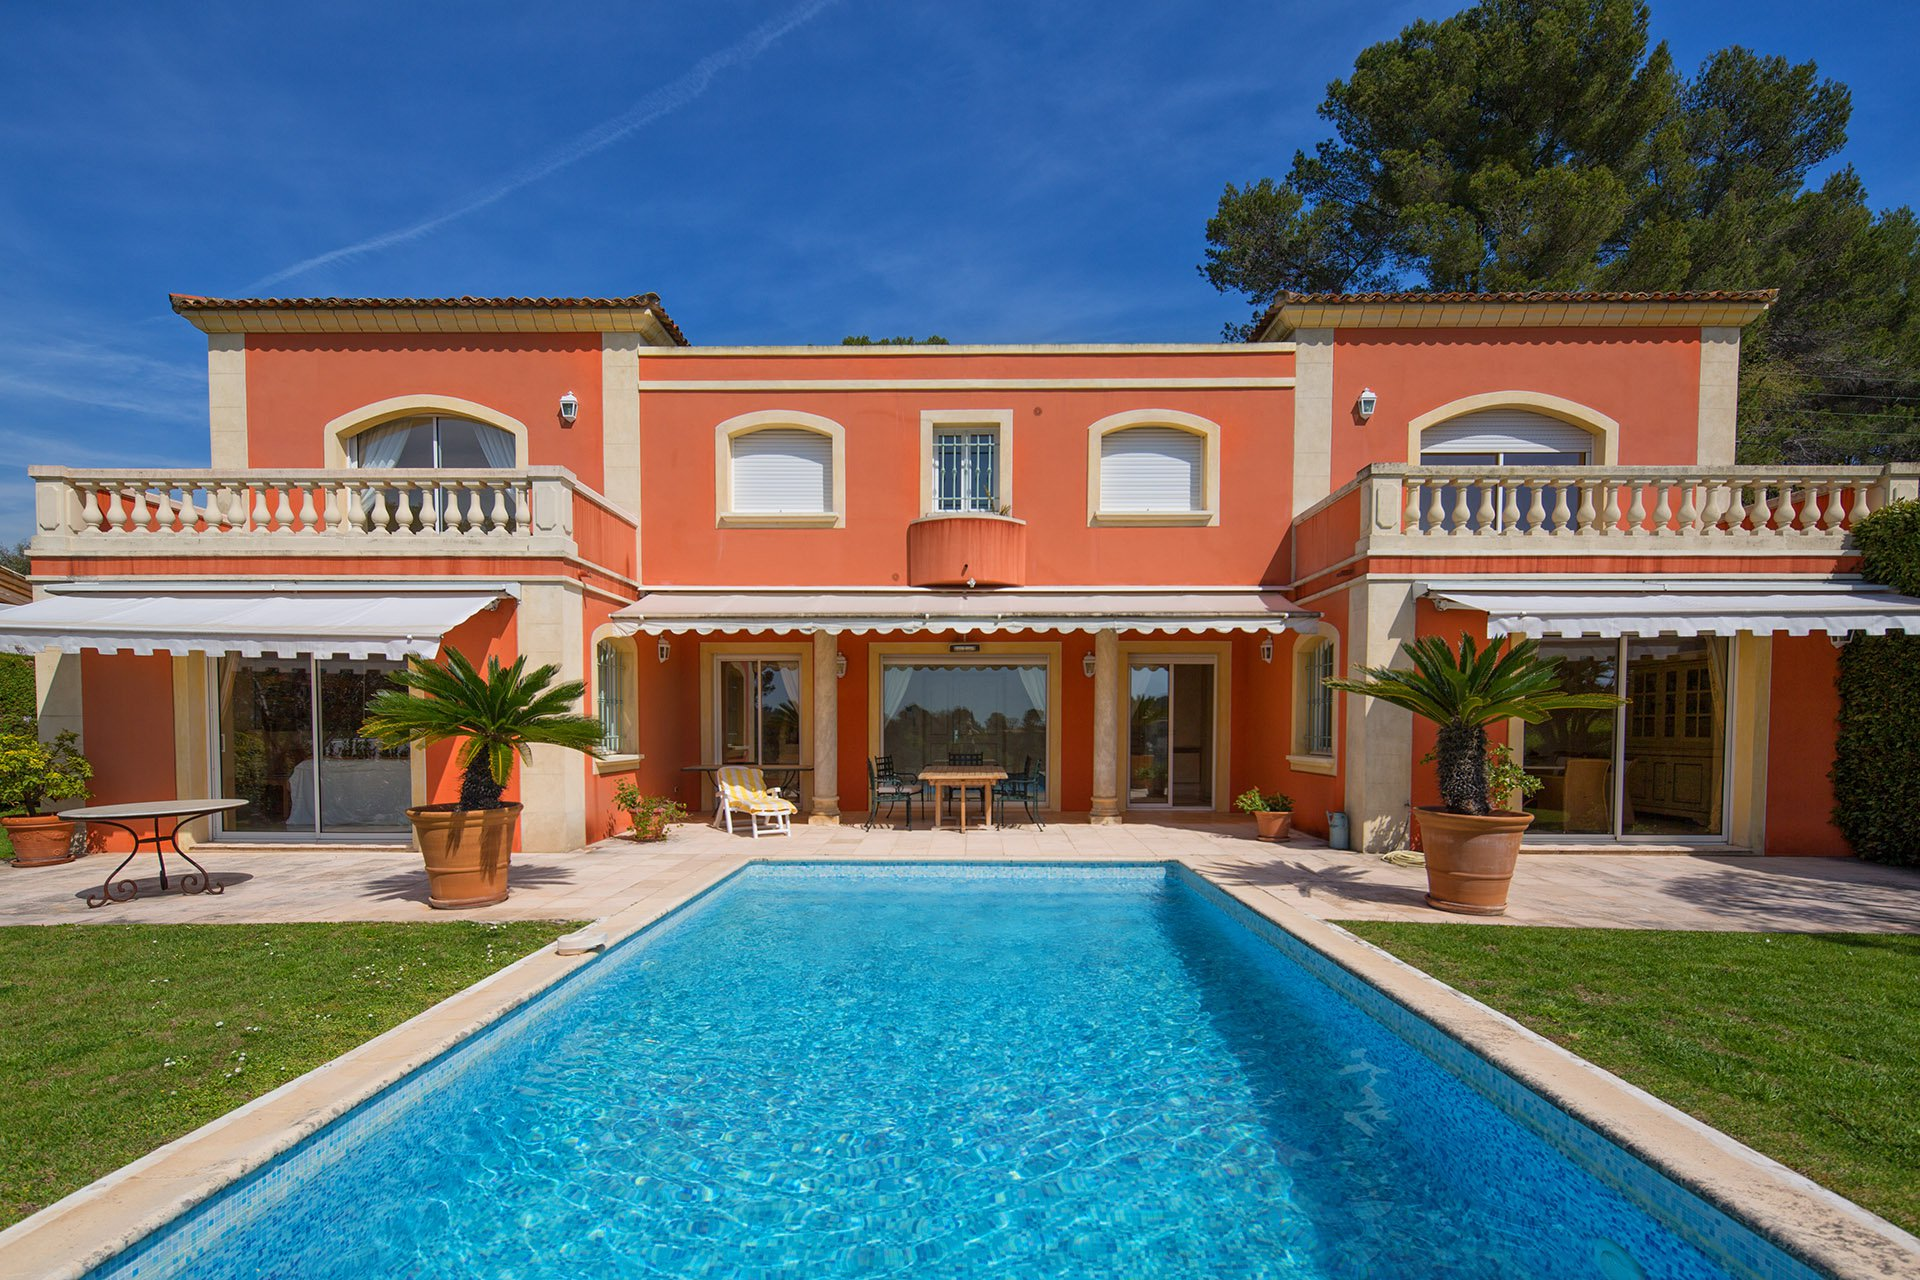 HOUSE FOR SALE IN MOUGINS IN A GATED DOMAIN